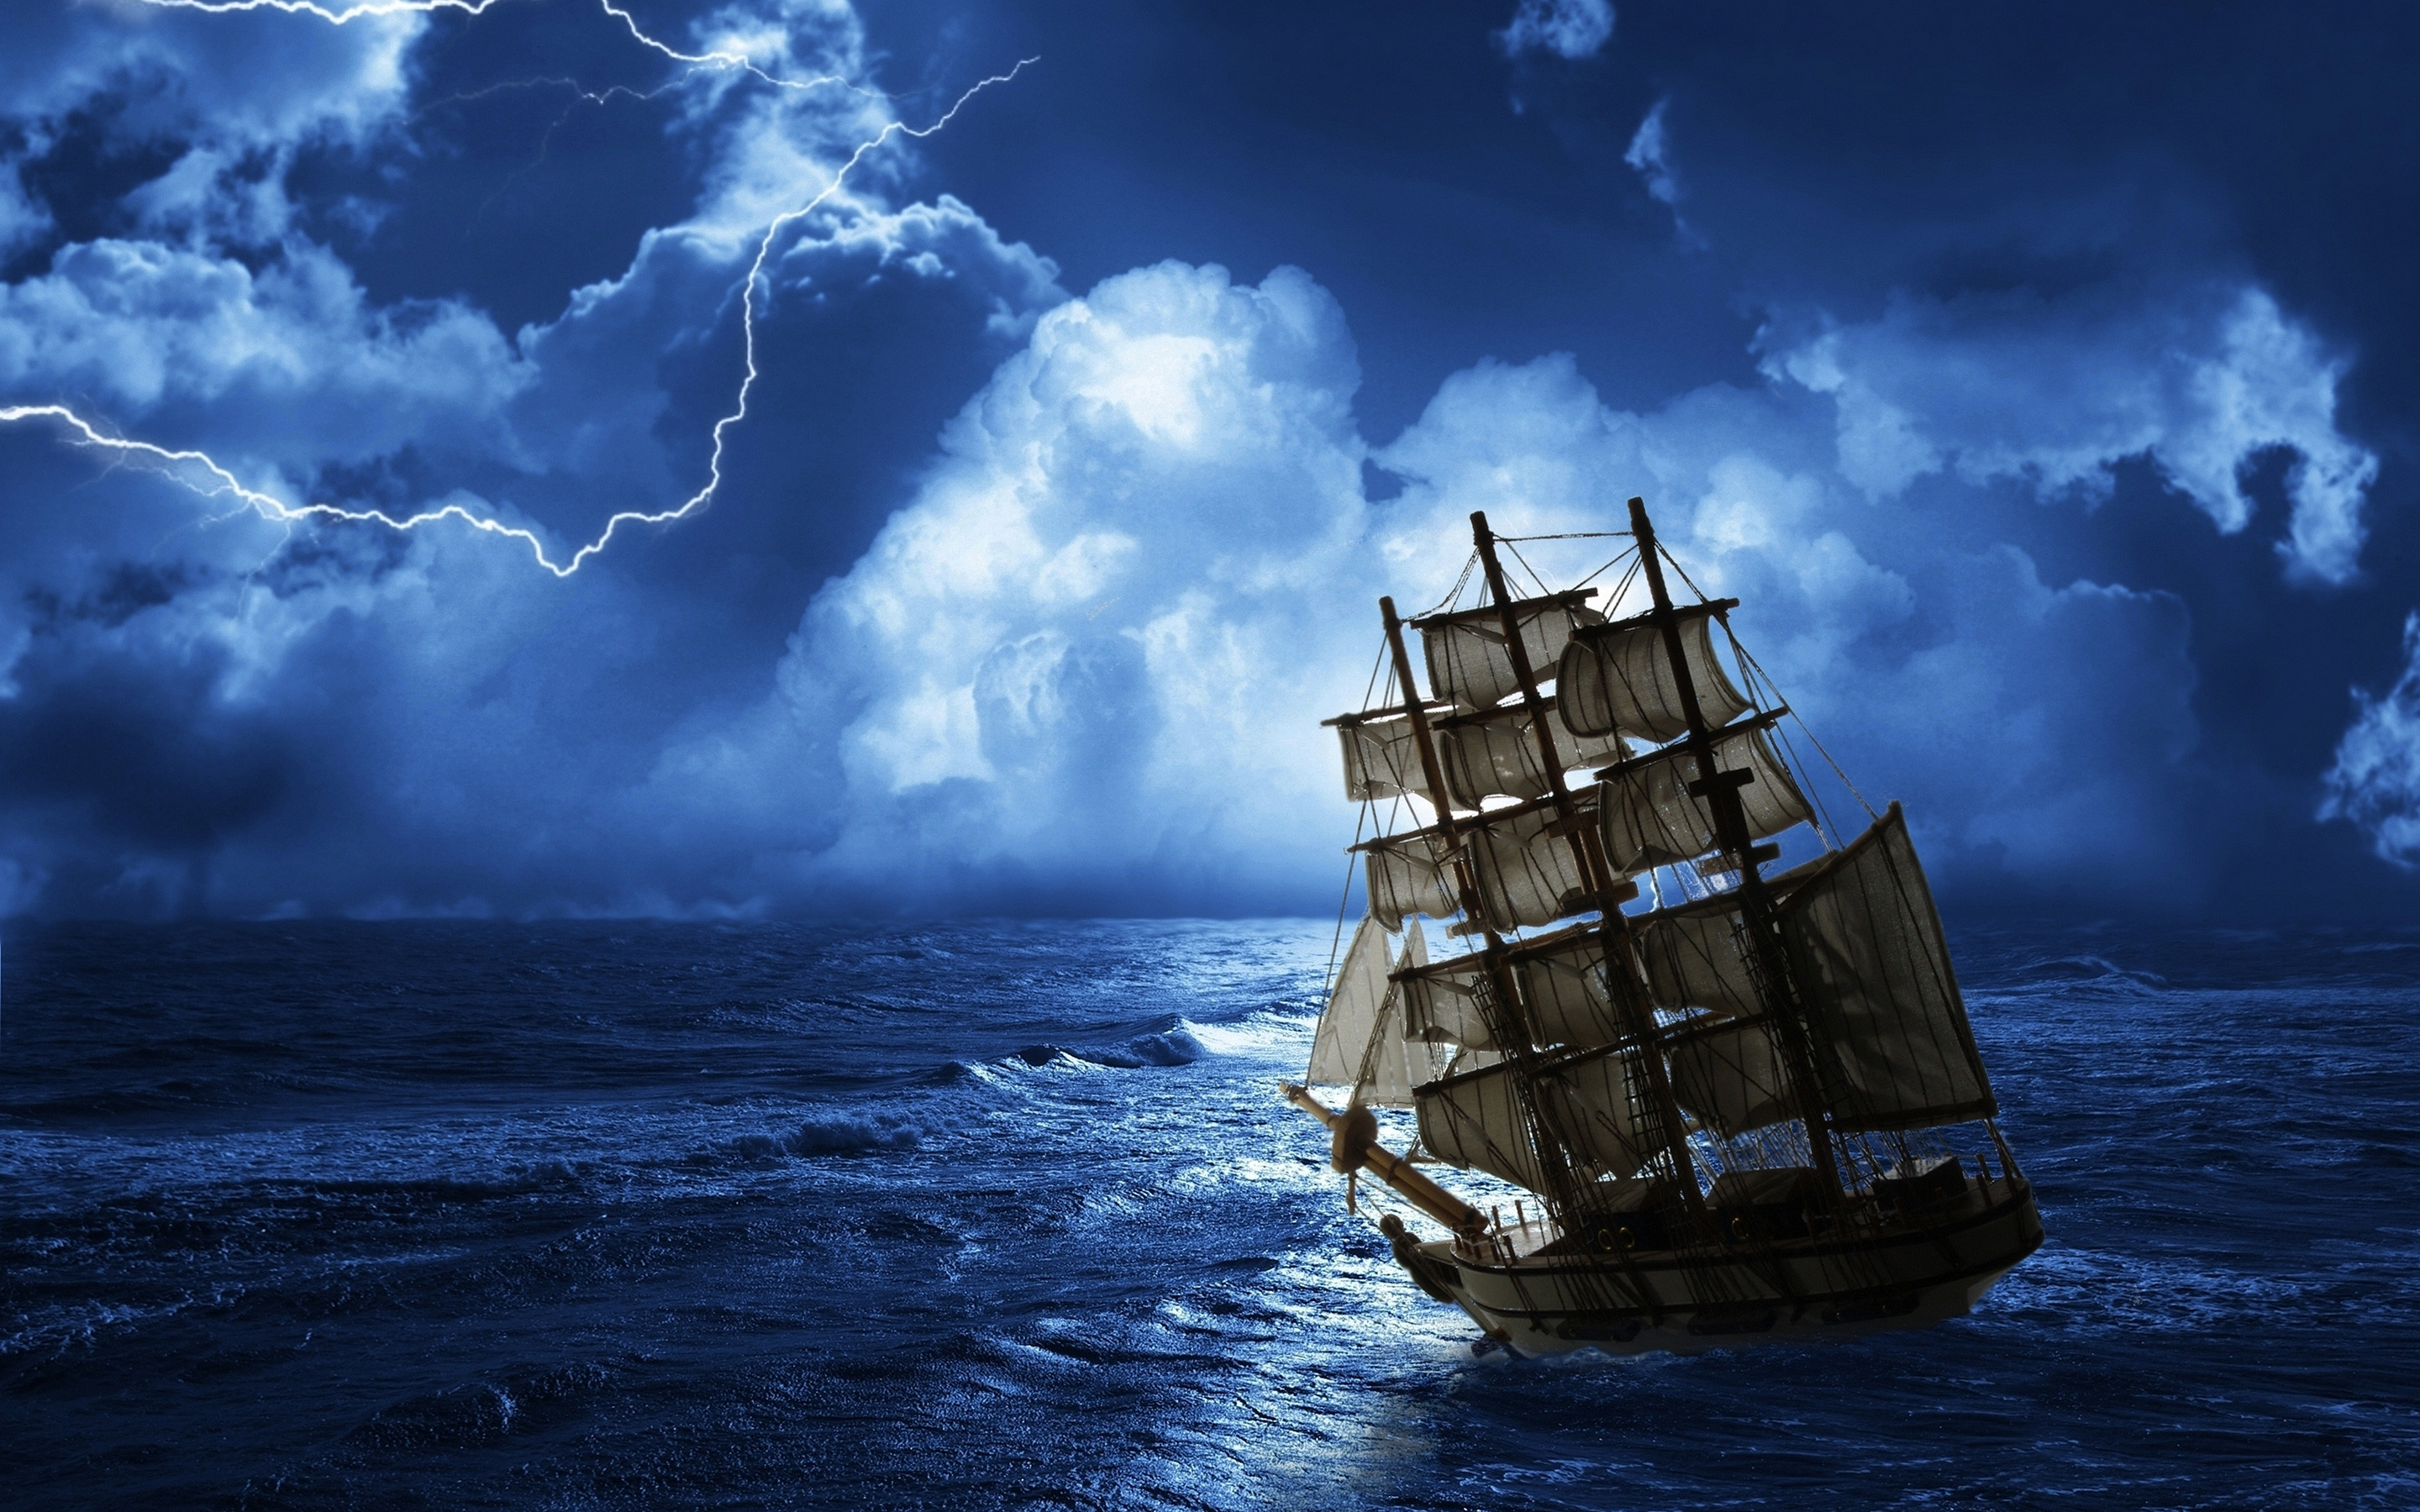 Ghost Pirate Ship Wallpaper Picture As Wallpaper HD